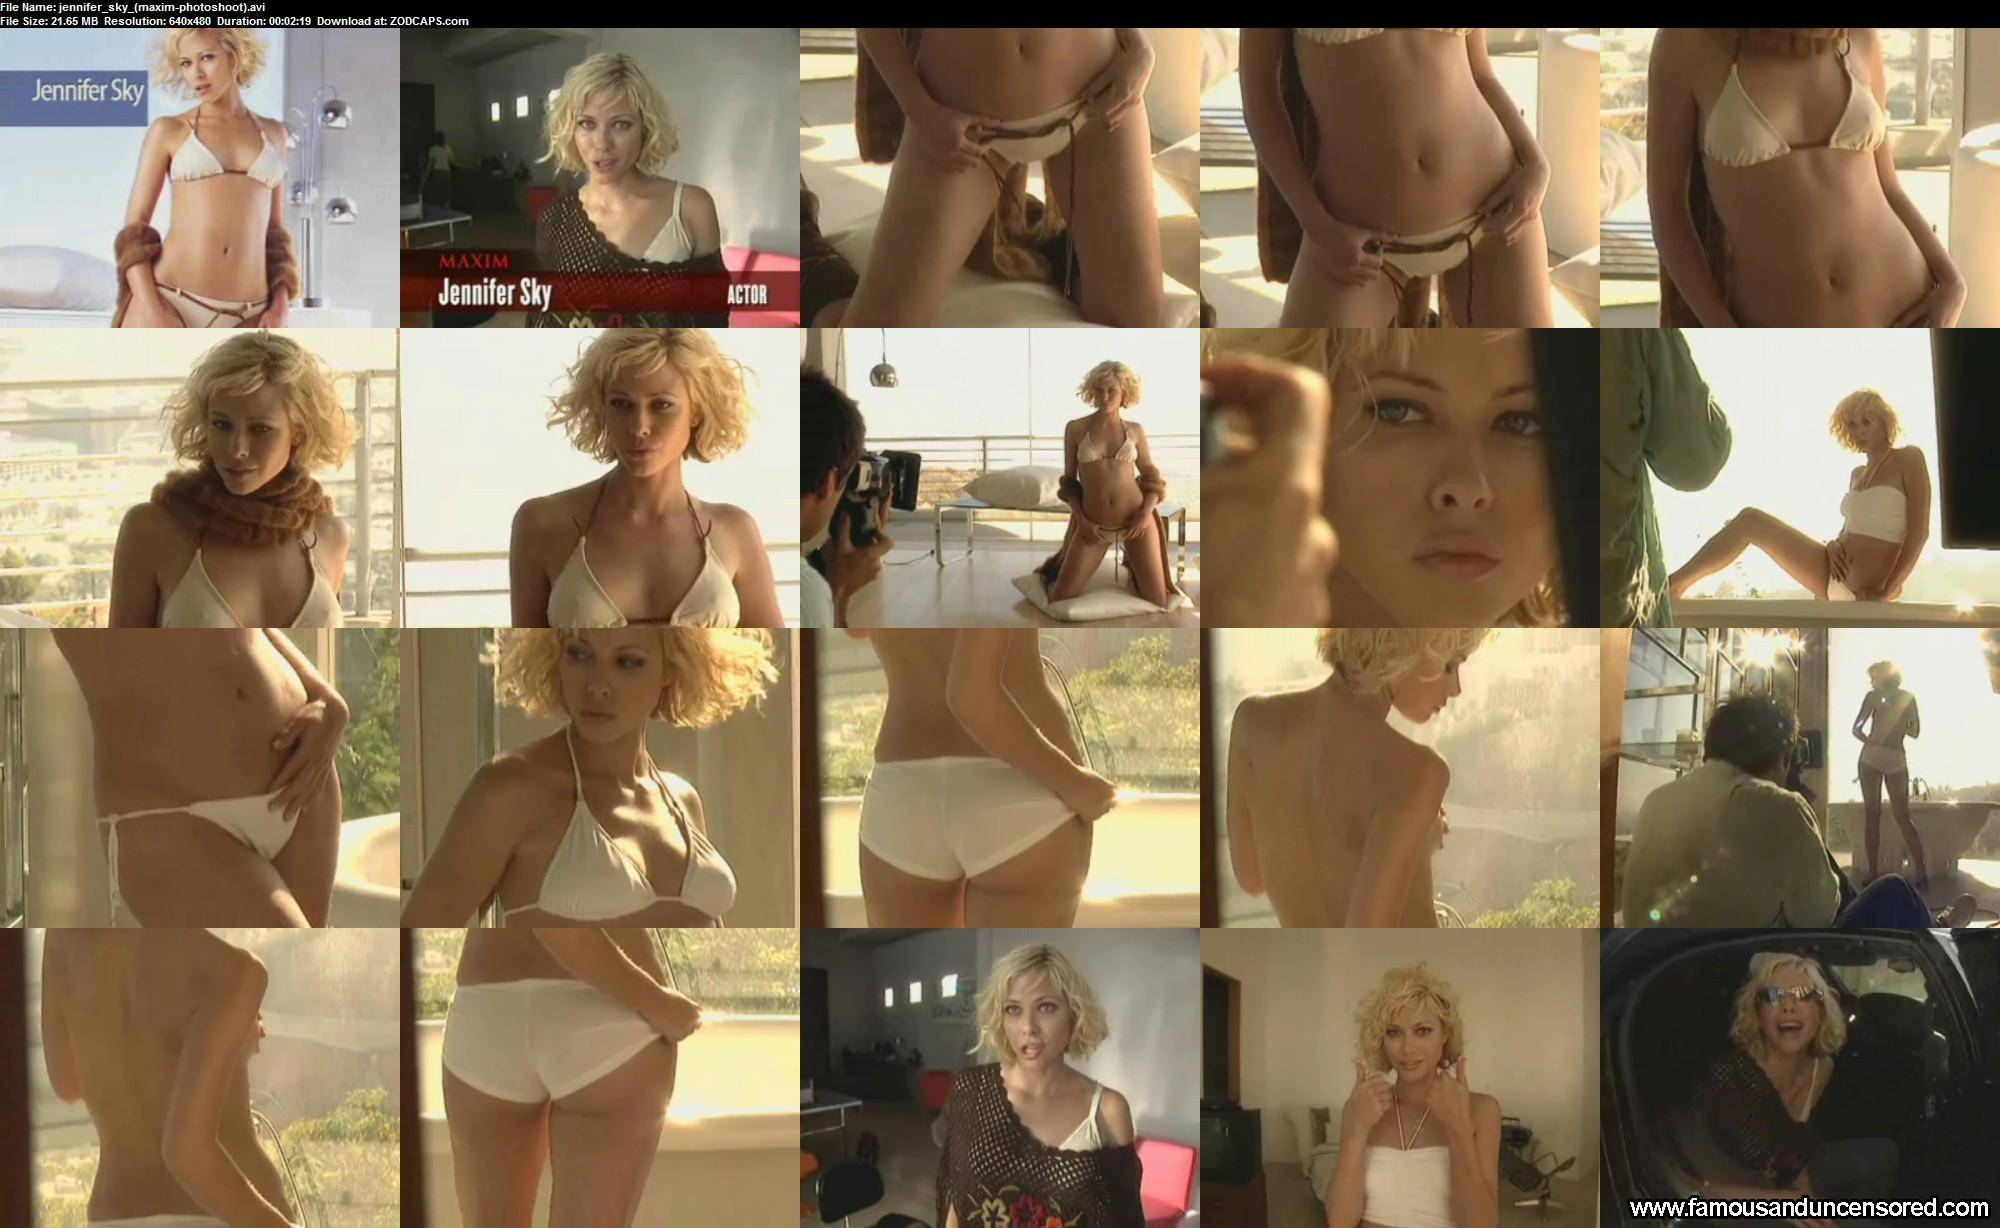 Jennifer Sky Maxim Photoshoot Beautiful Celebrity Sexy Nude Scene